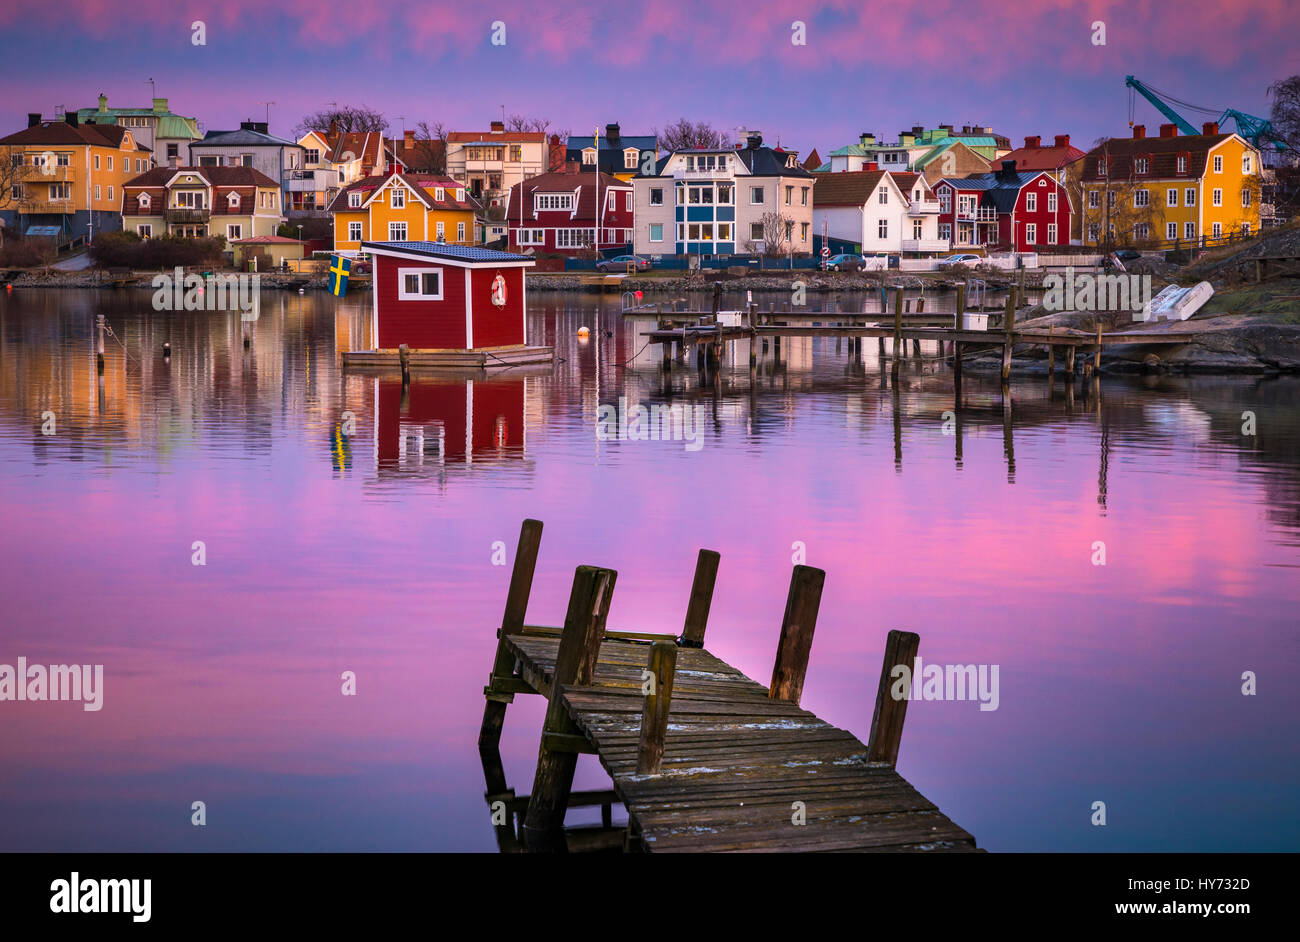 Dock and buildings in Karlskona, Sweden ..... Karlskrona is a locality and the seat of Karlskrona Municipality, - Stock Image